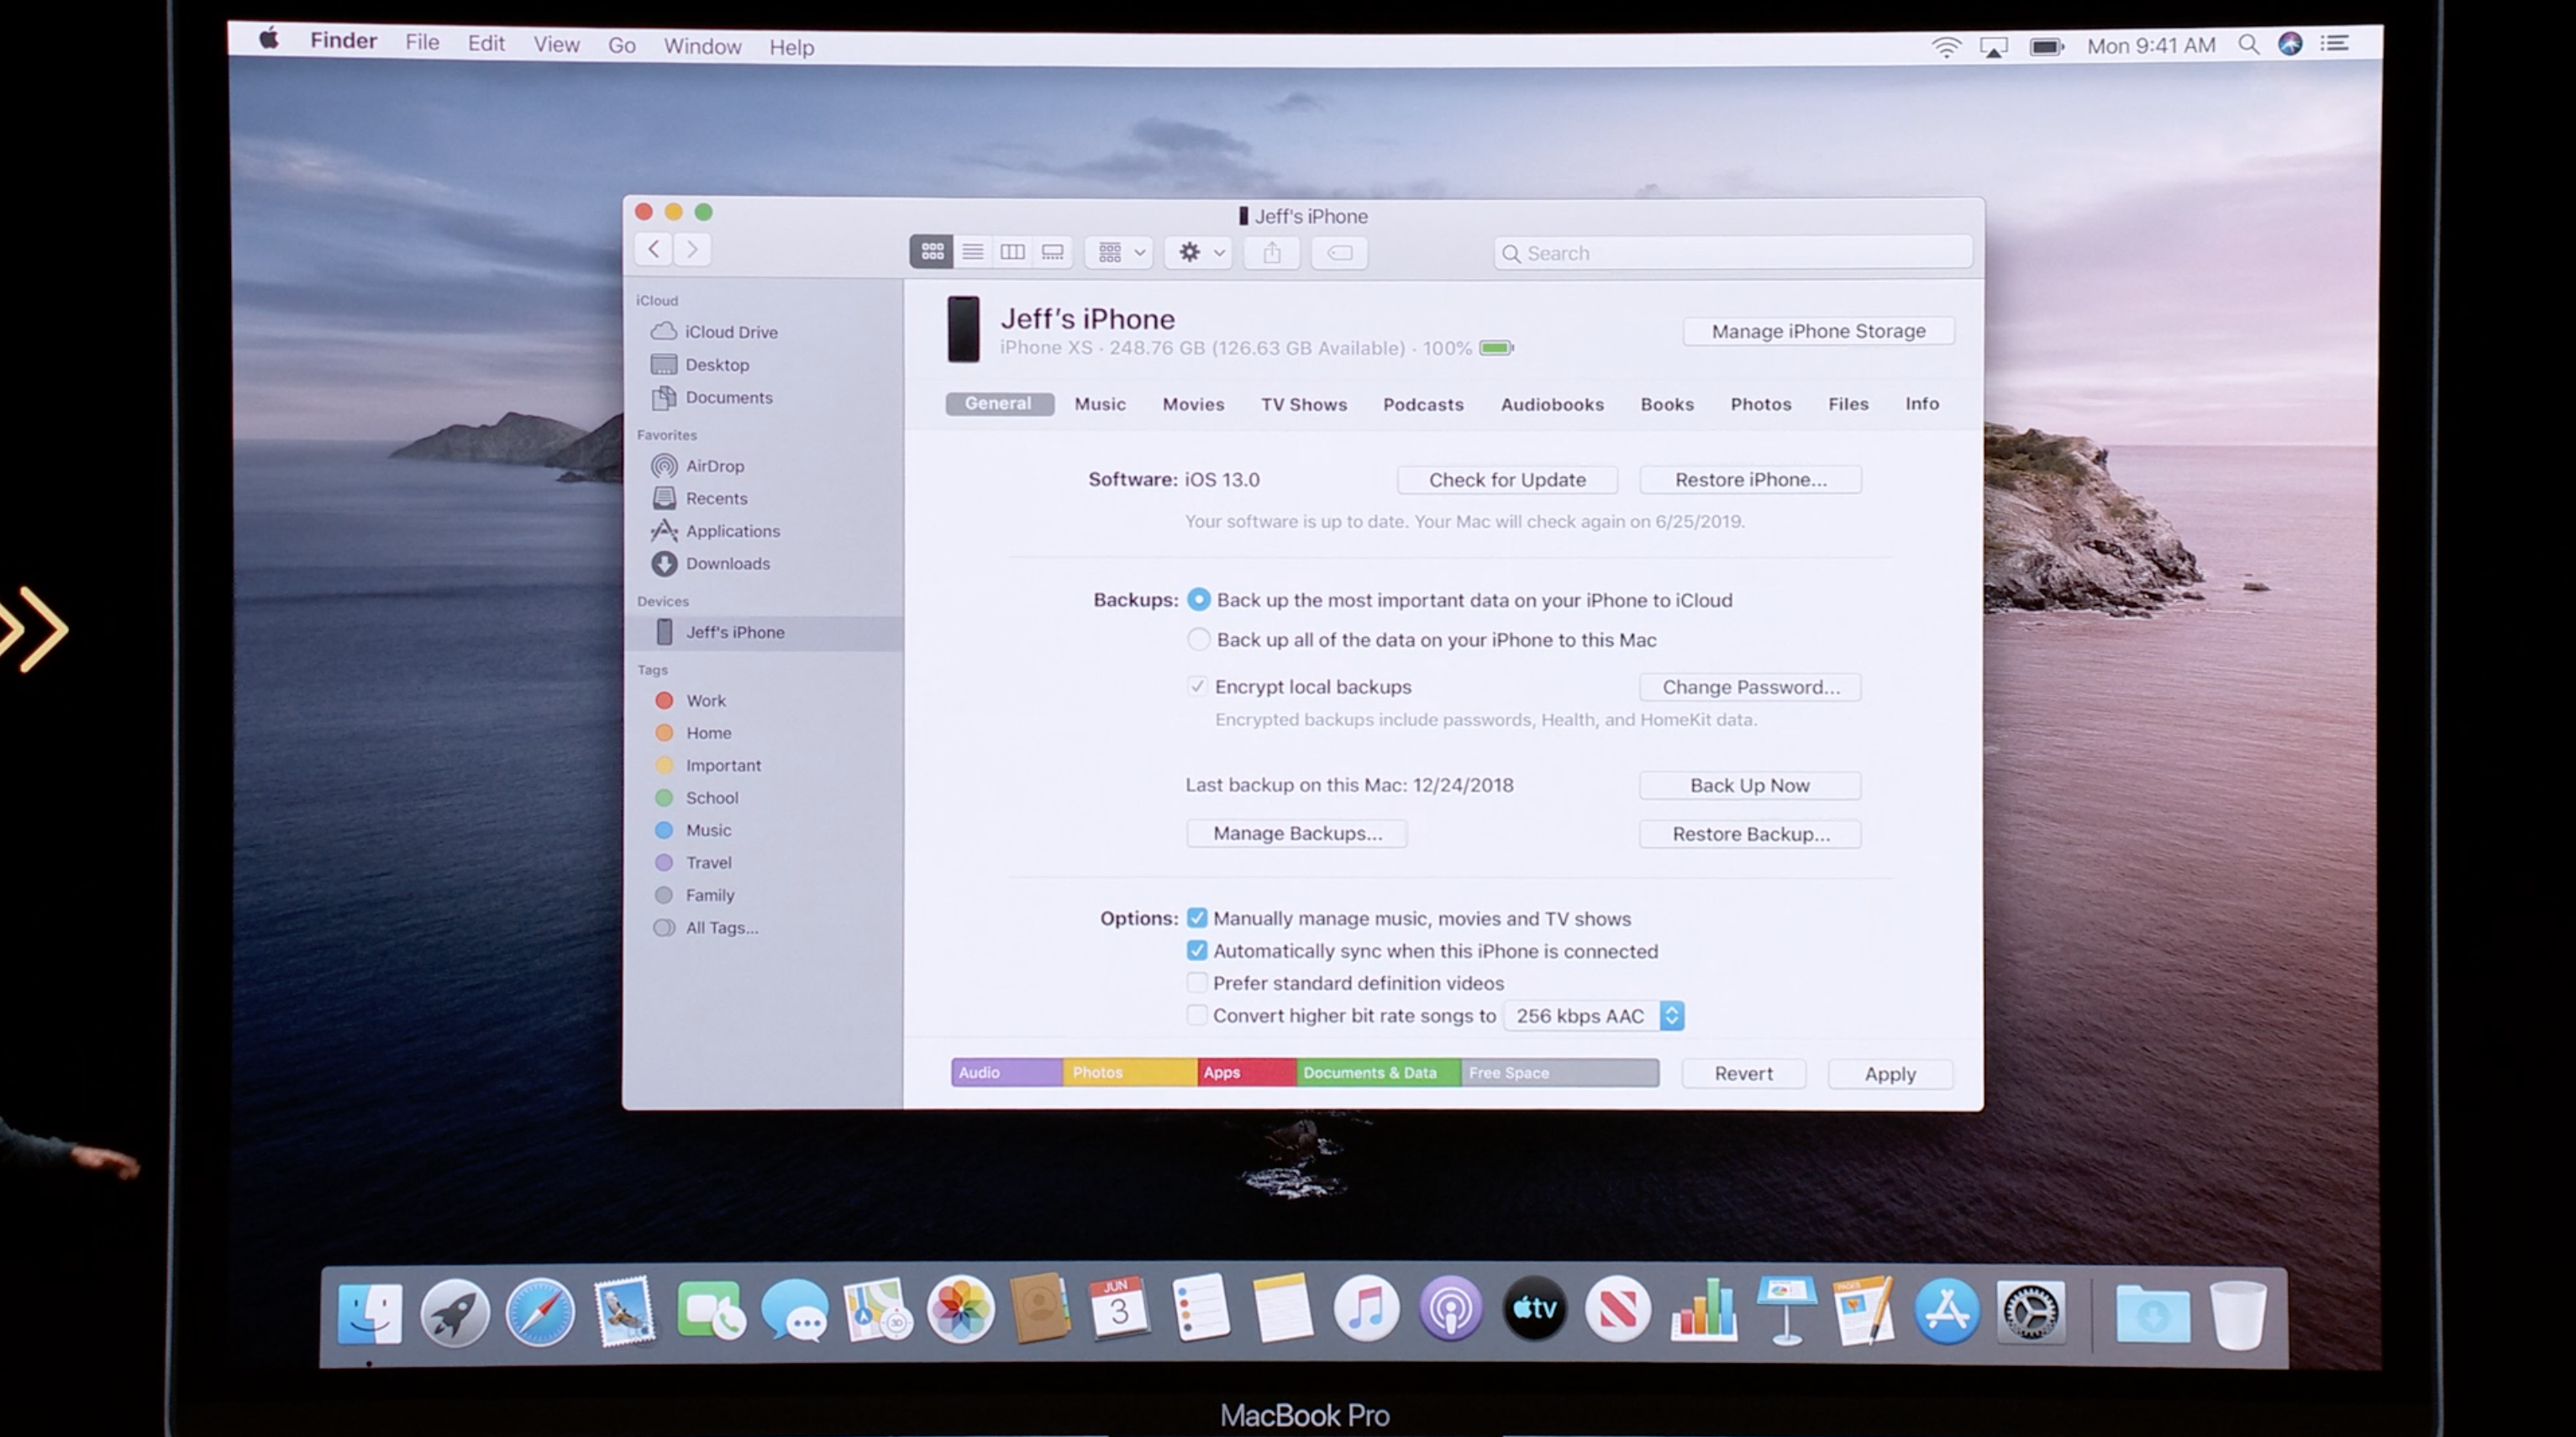 Managing your iPhone on the Mac in a post iTunes world